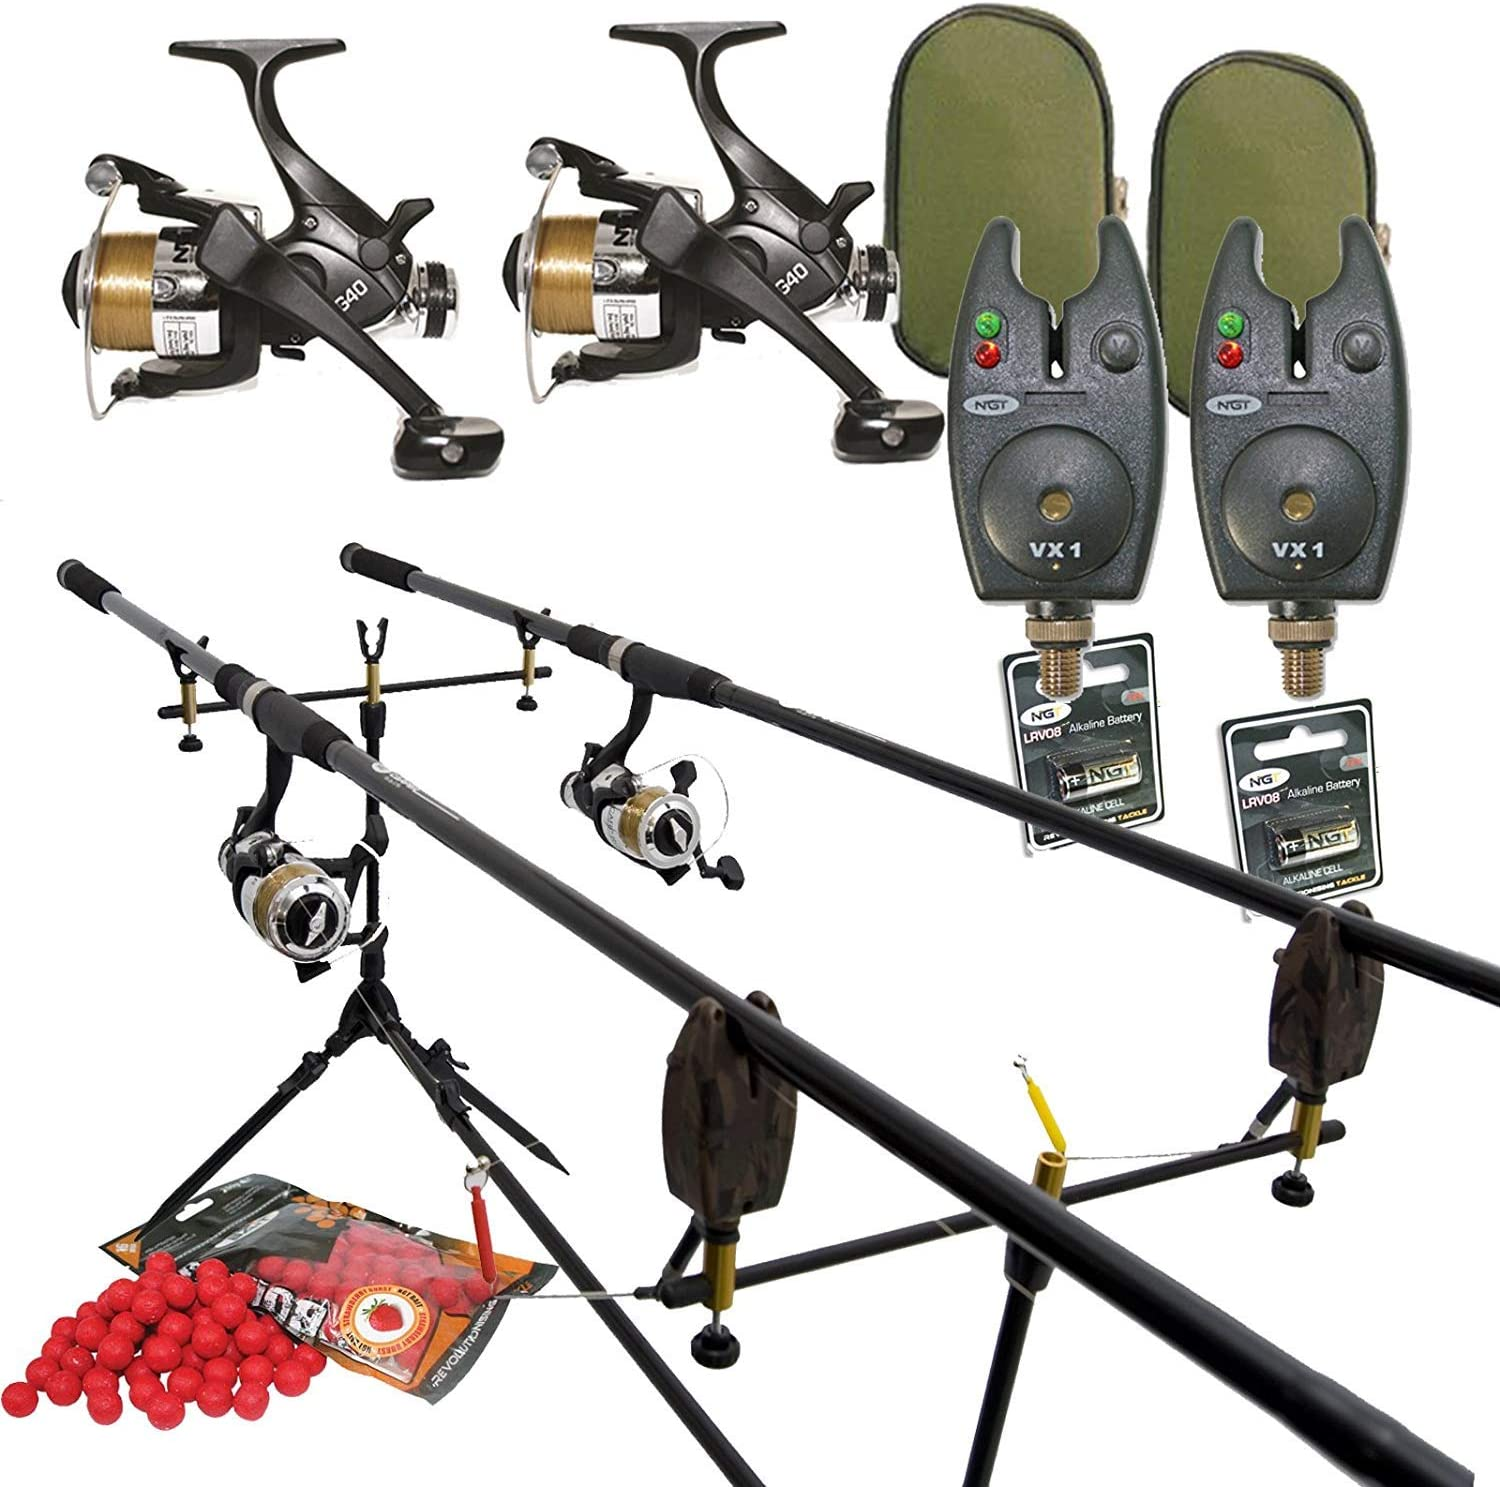 Details about Carp Fishing Set 3 Rods 3 Reels 3 Alarms Rod Pod Bait etc